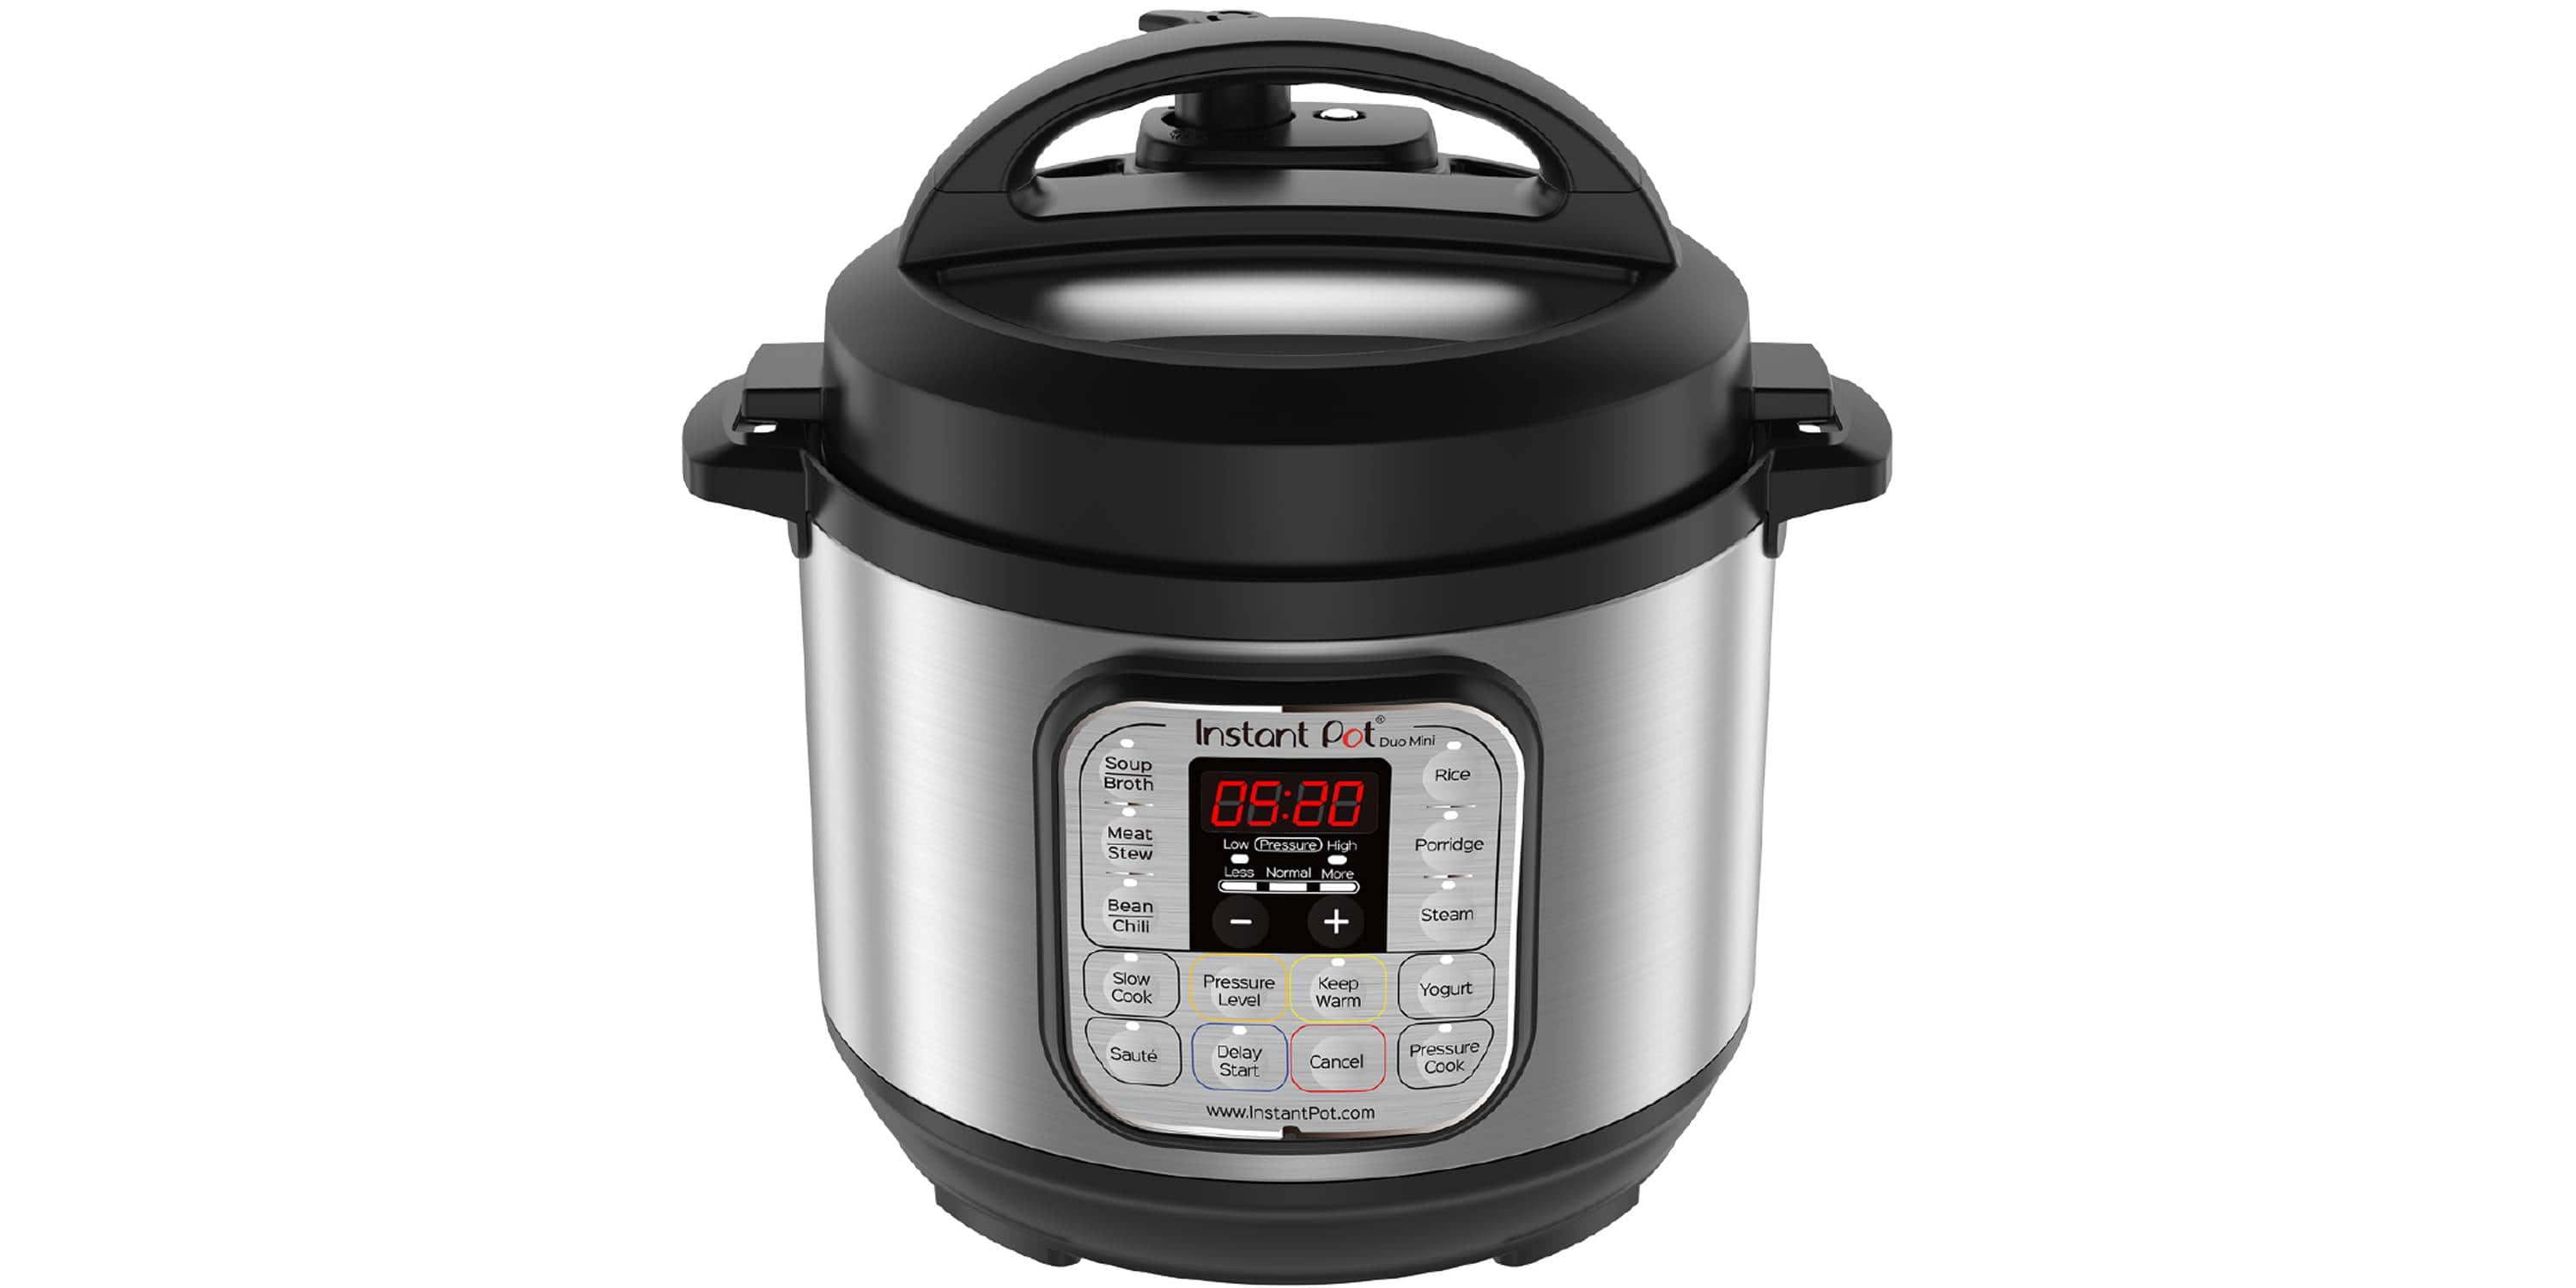 Instant Pot Duo Mini 3-Quart Programmable Pressure Cooker $51.99 @ Target (YMMV: $21.99 via Google Express & AMEX Offer)